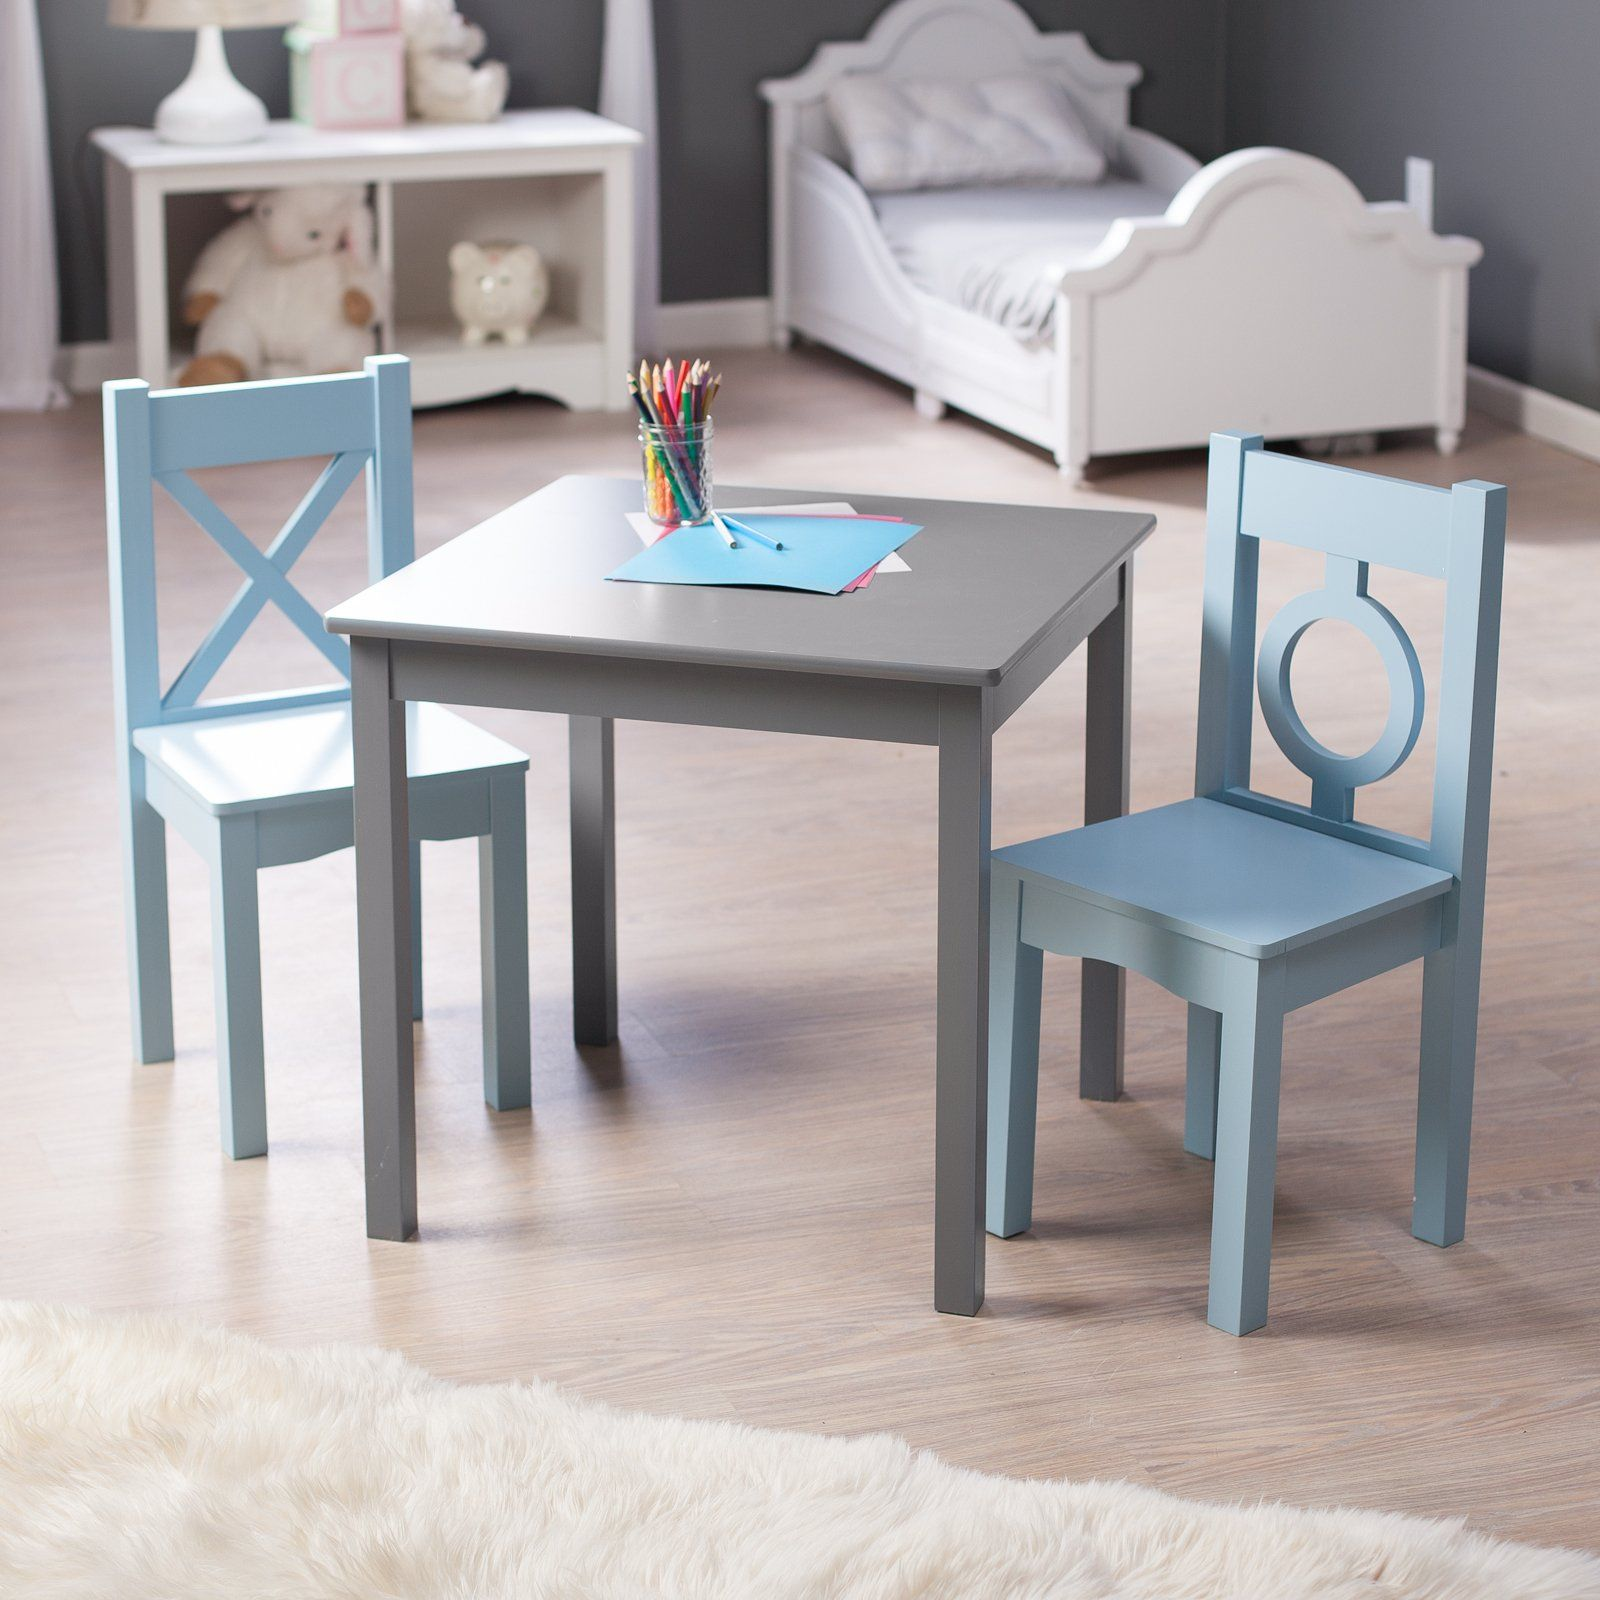 Lipper Hugs And Kisses Table 2 Chair Set Gray